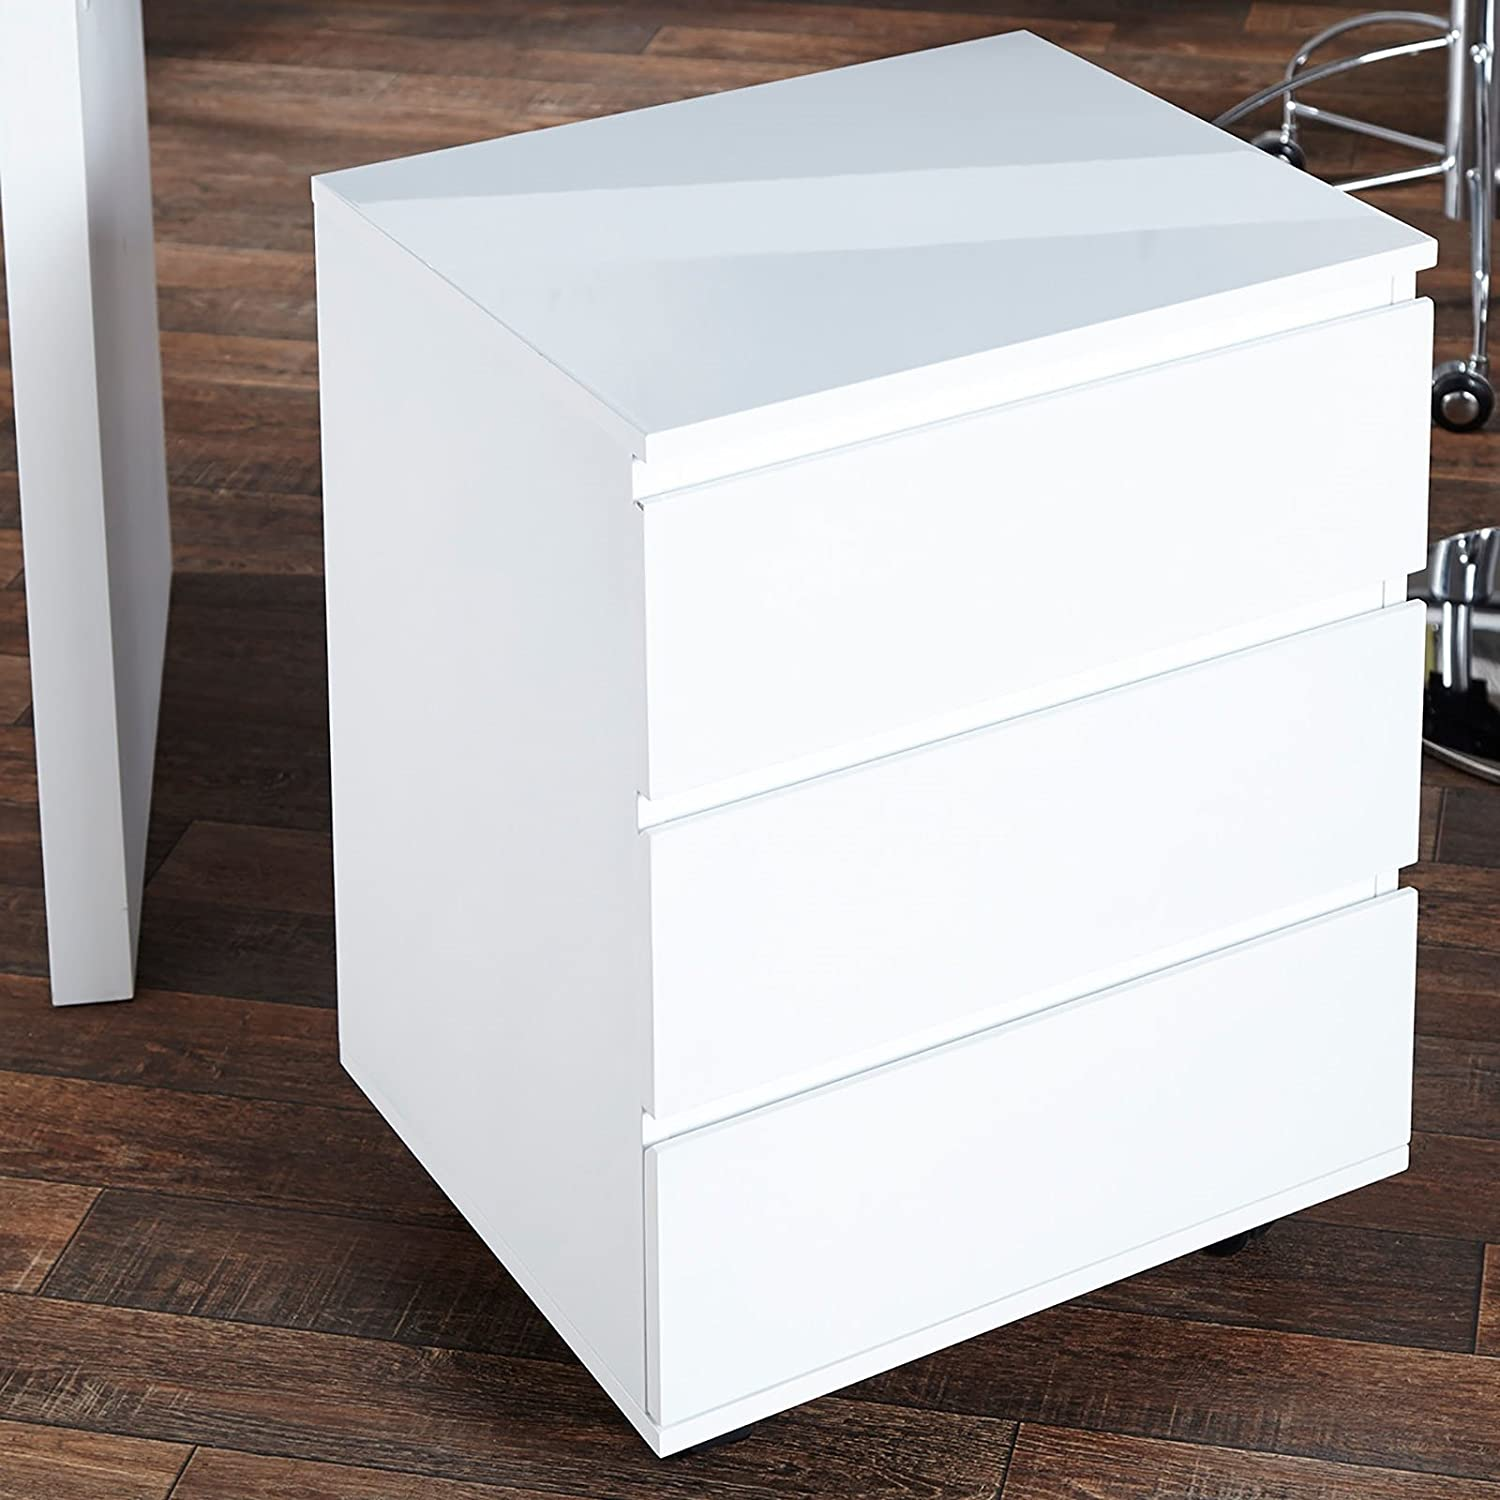 DESIGN DELIGHTS MOBILE FILING DRAWER CABINET MOVE for office highgloss white XTRADEFACTORY GMBH